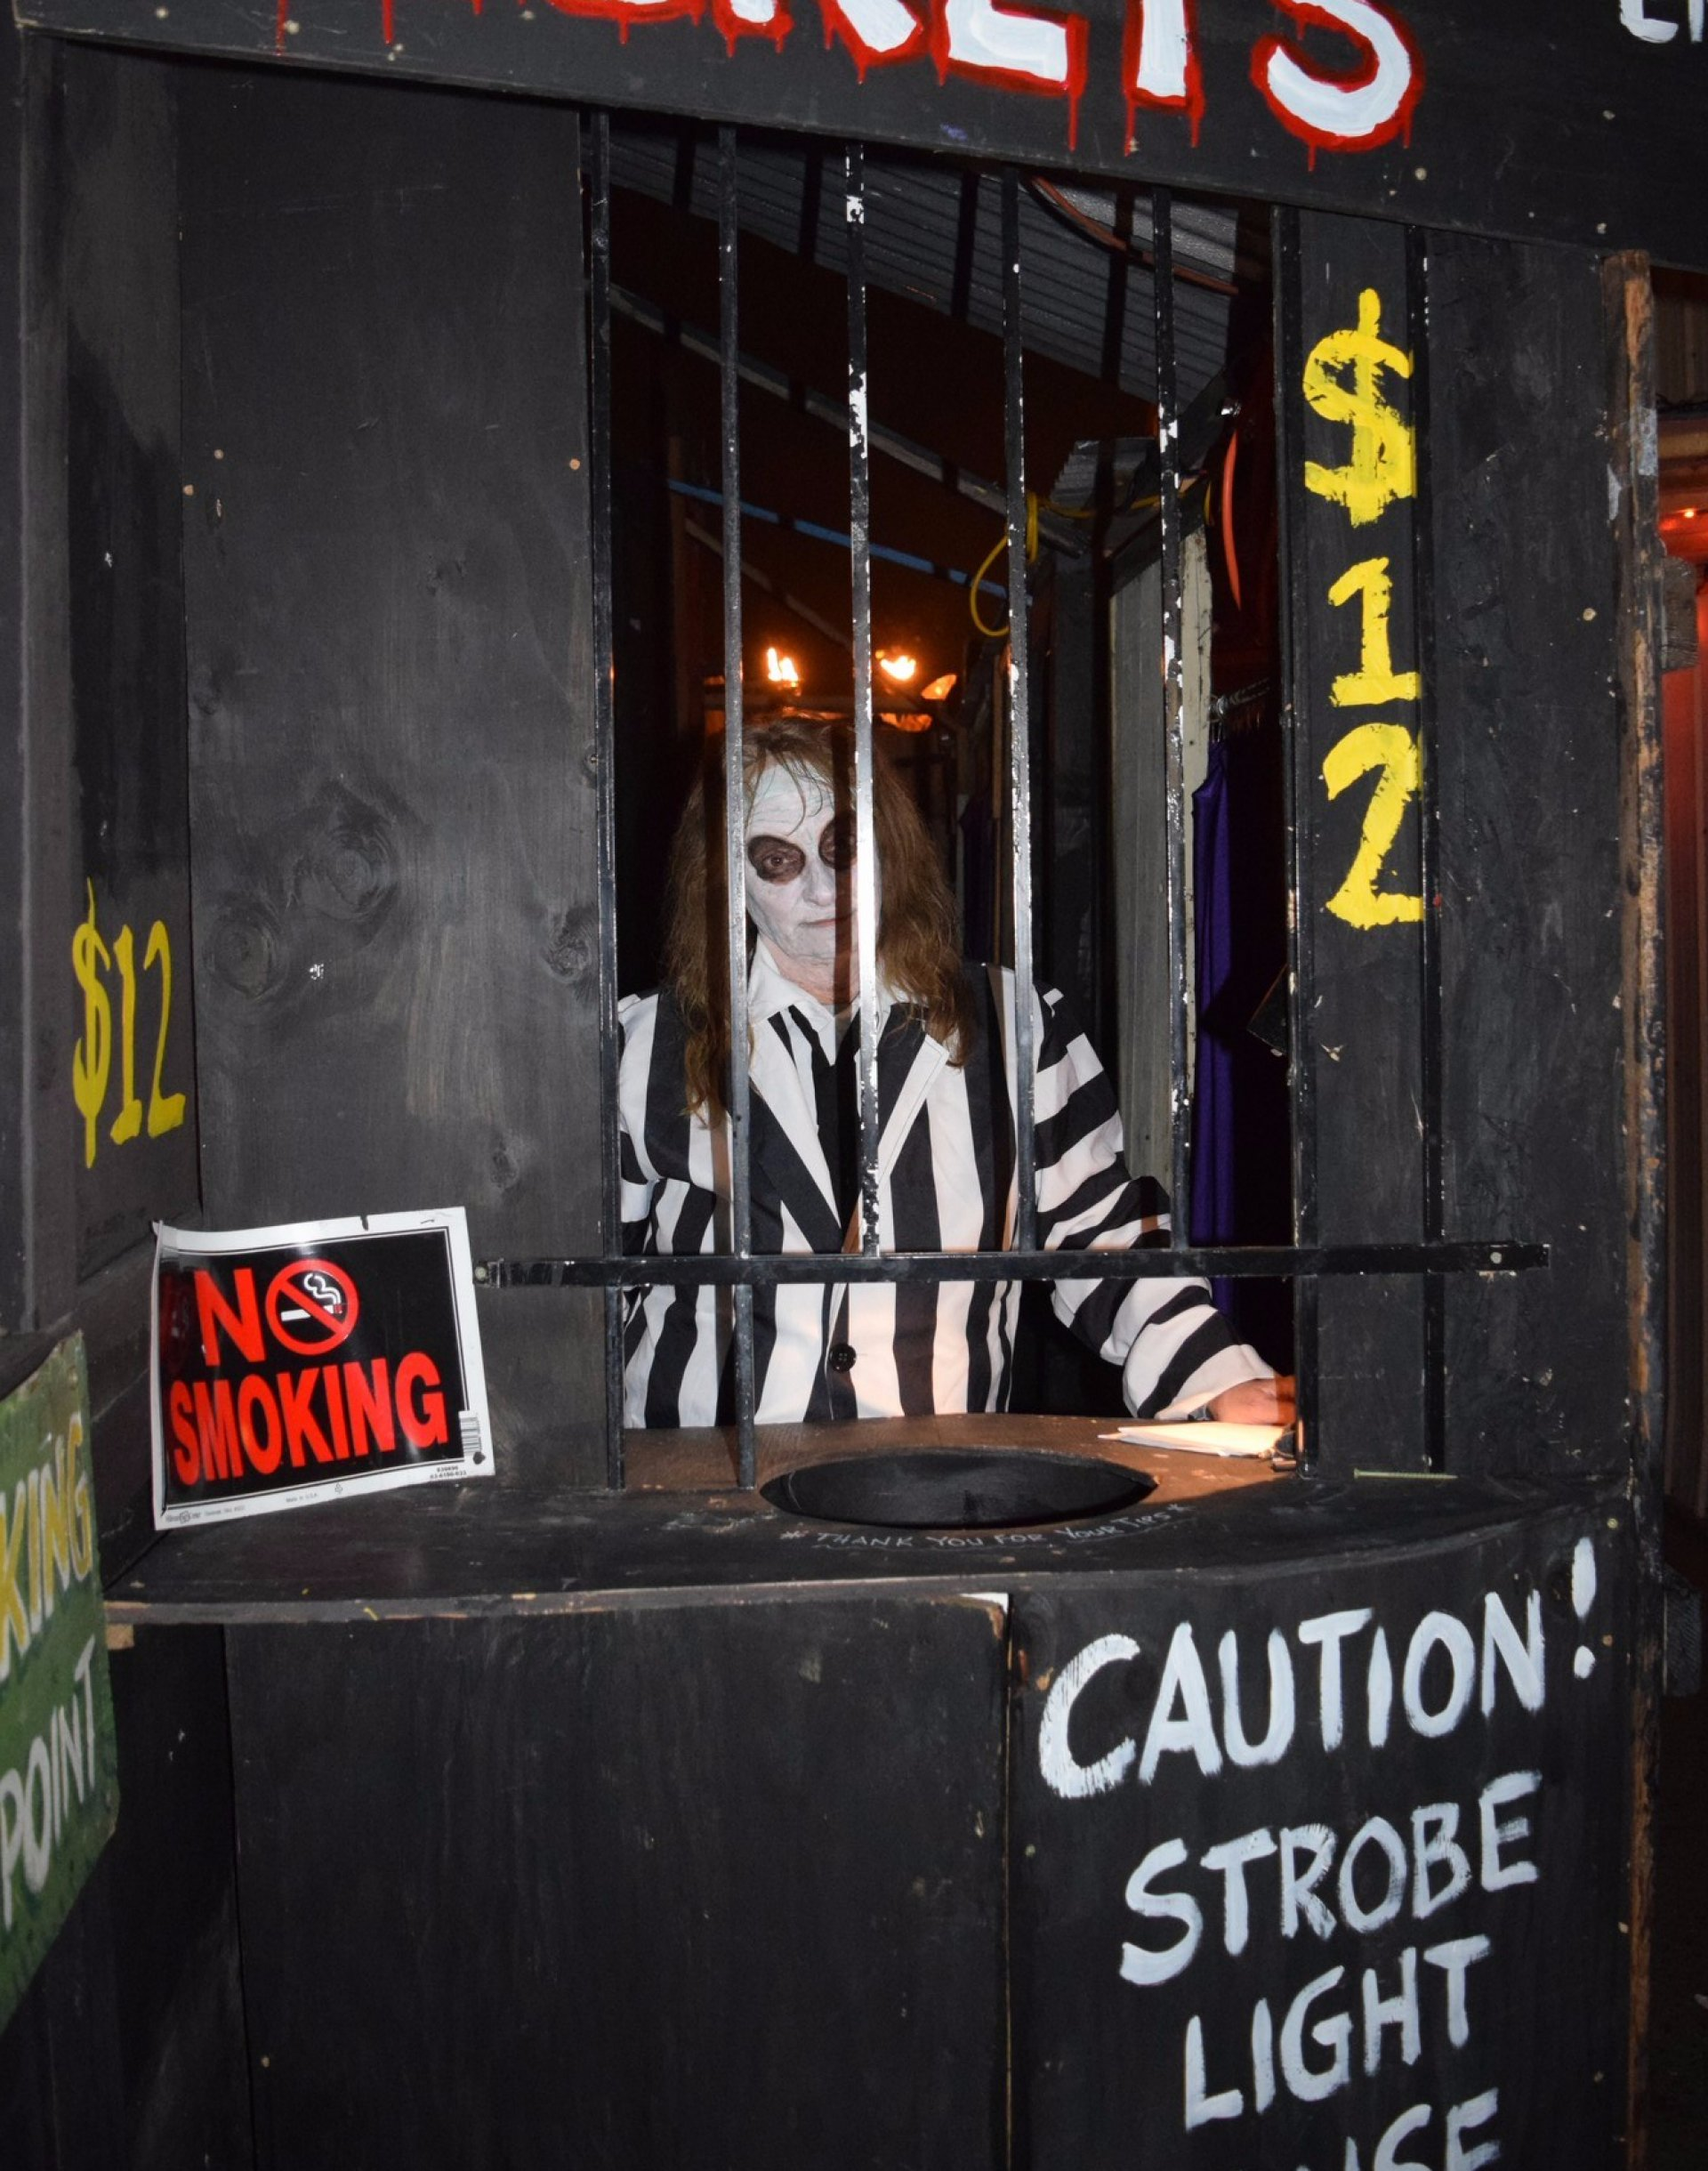 Prisoner Mary Severdia handing out tickets to peoples nightmare at the Haunted Kinetic Lab of Horrors on Oct. 28. Photo credit: Juan Herrera